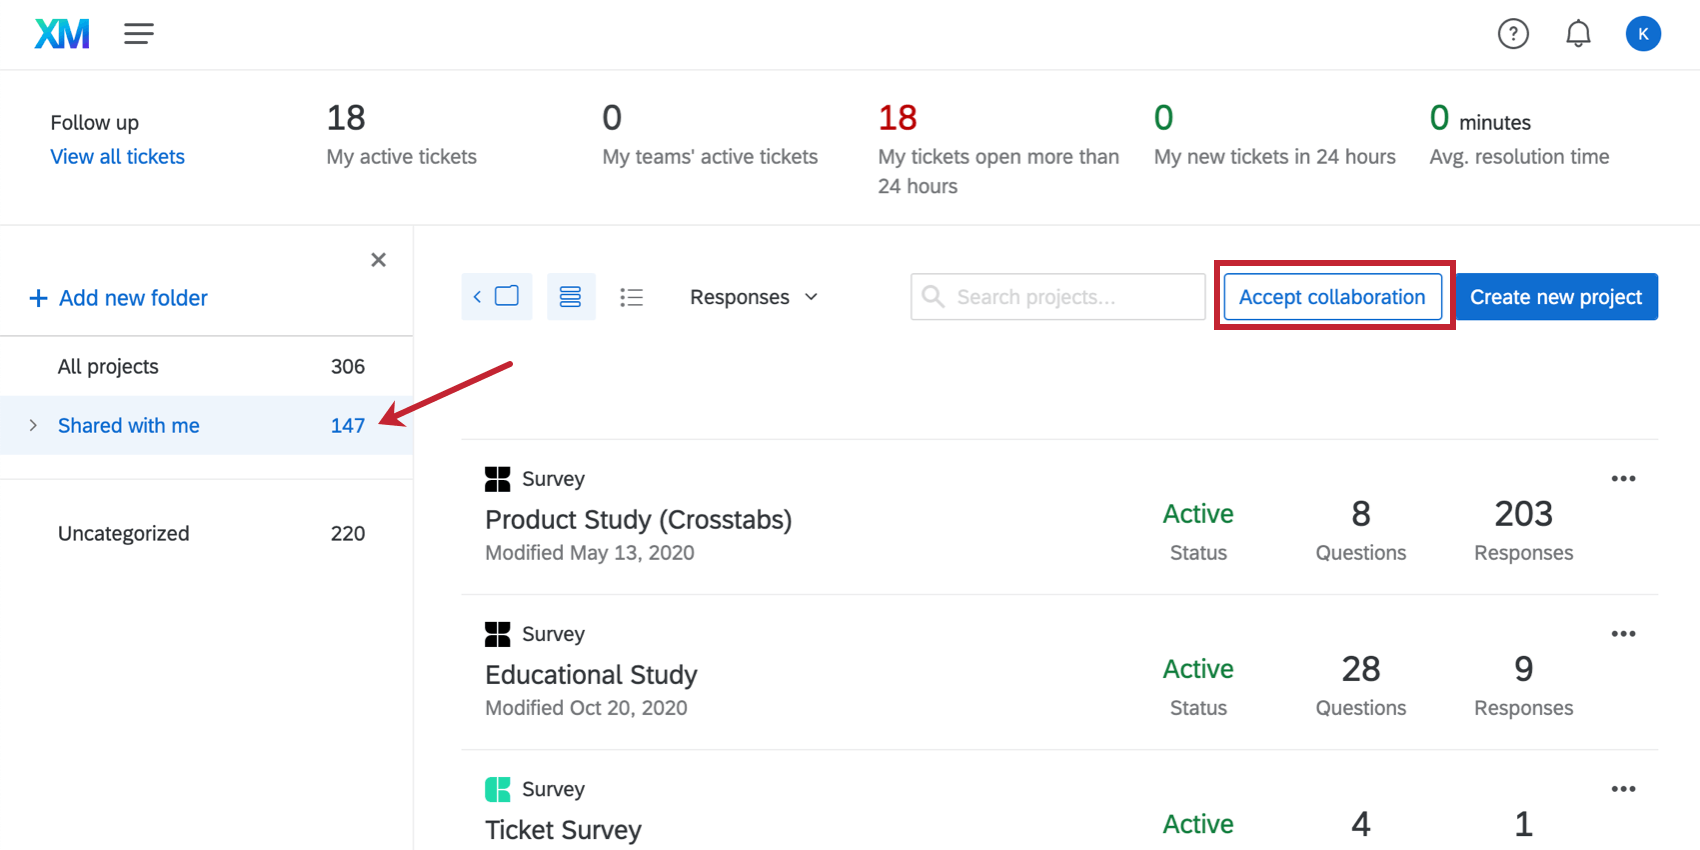 Blue Accept collaboration button next to the Create Project button on the right